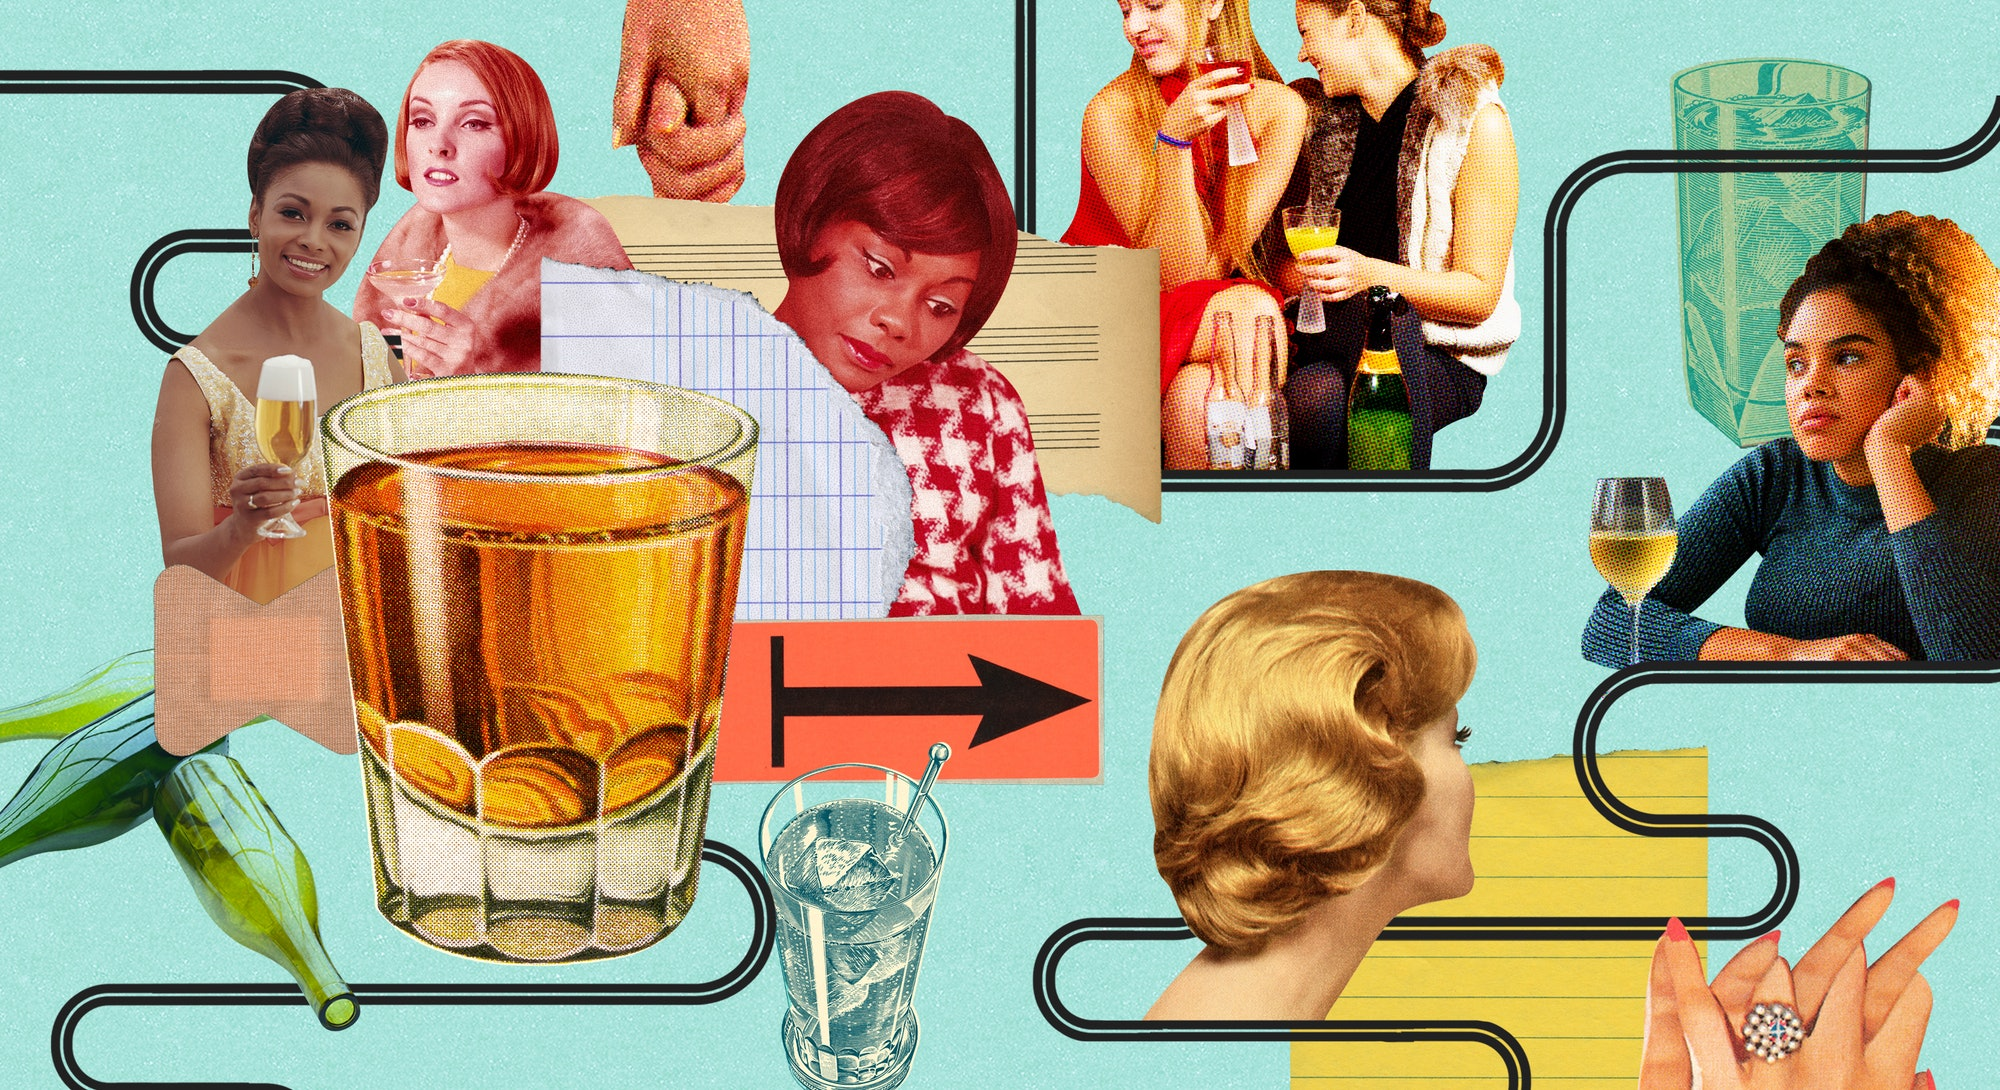 Three women describe how their friendships changed once they quit drinking.